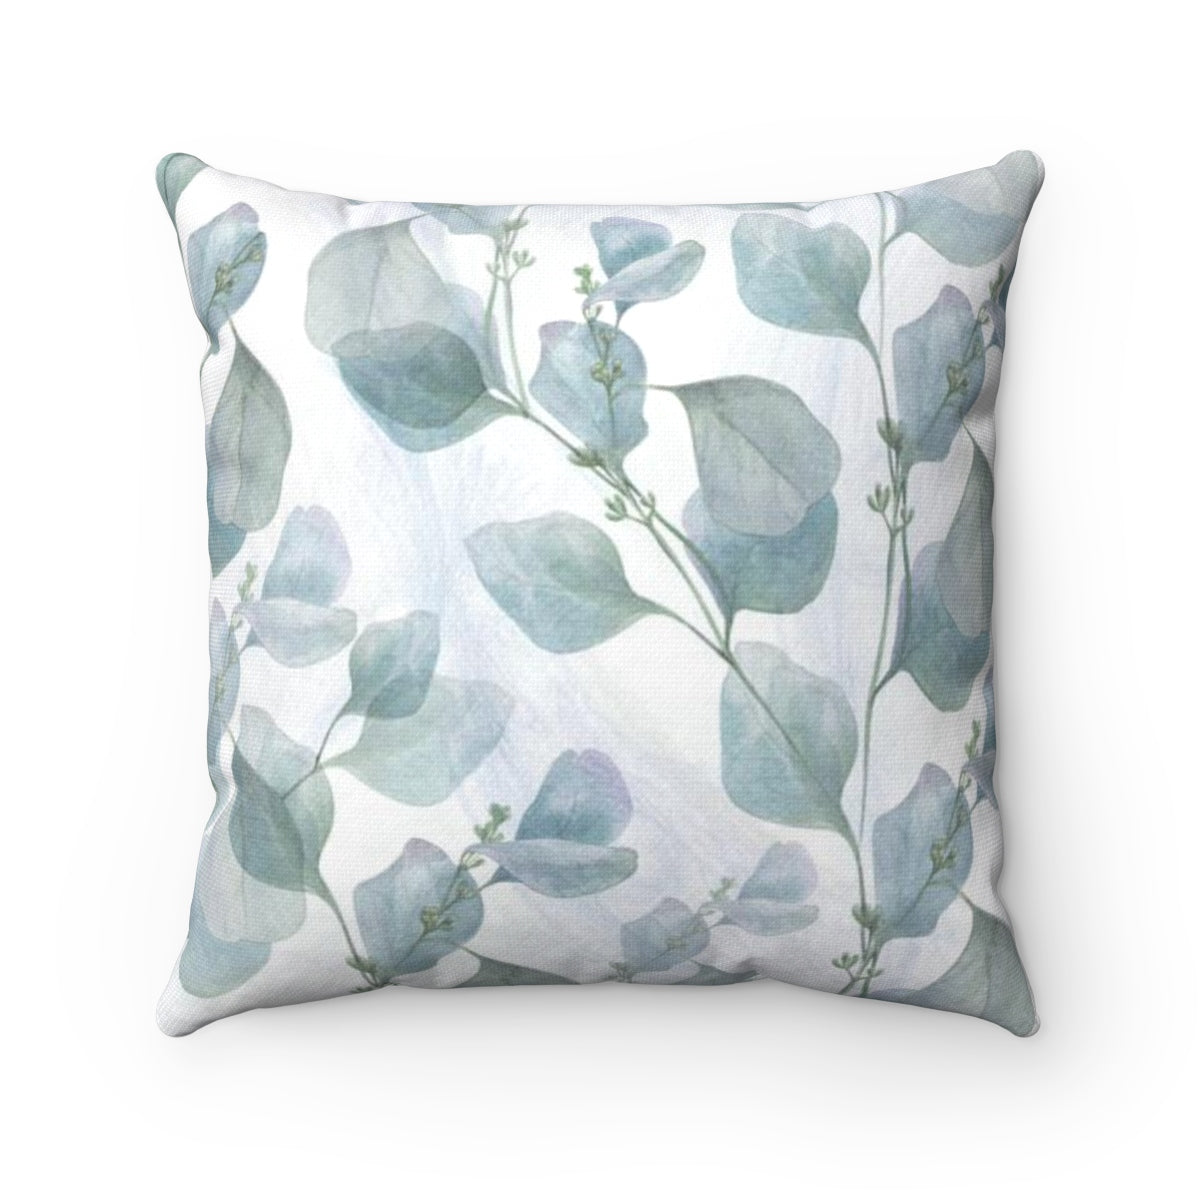 Blue leaf pattern accent pillow - Liz Kapiloto Art & Design